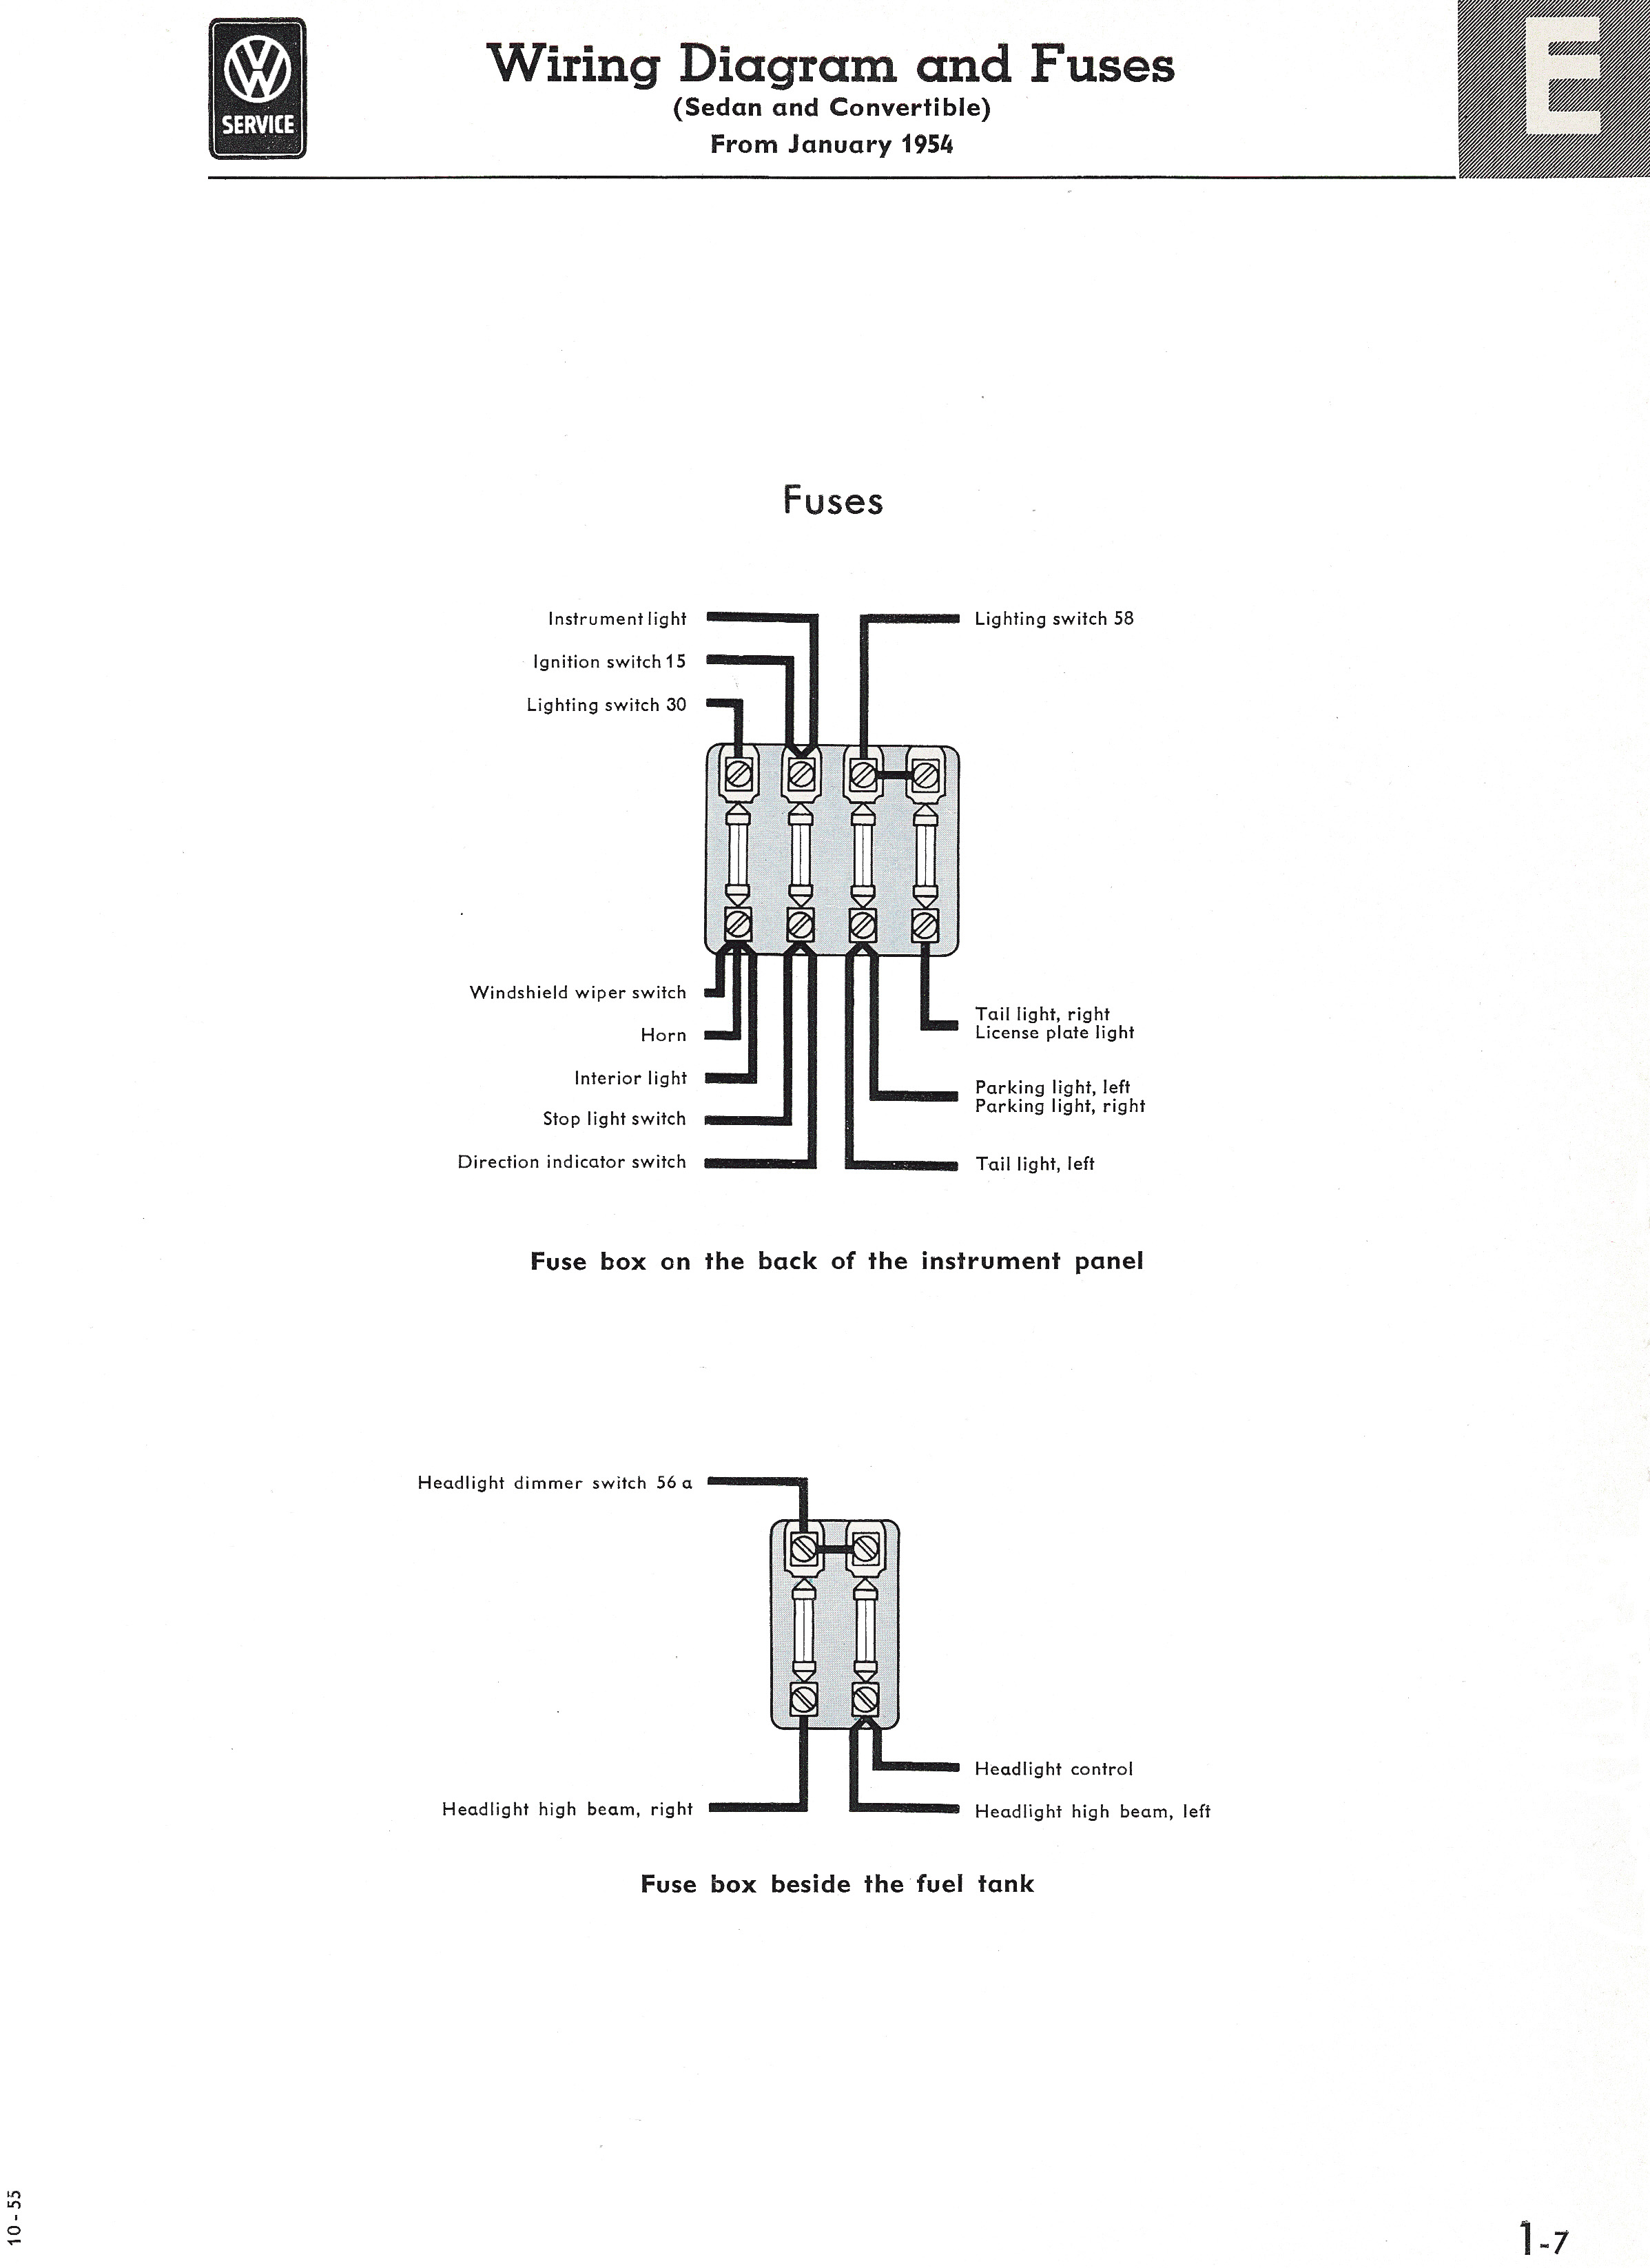 1968 Vw Beetle Wiring Diagram